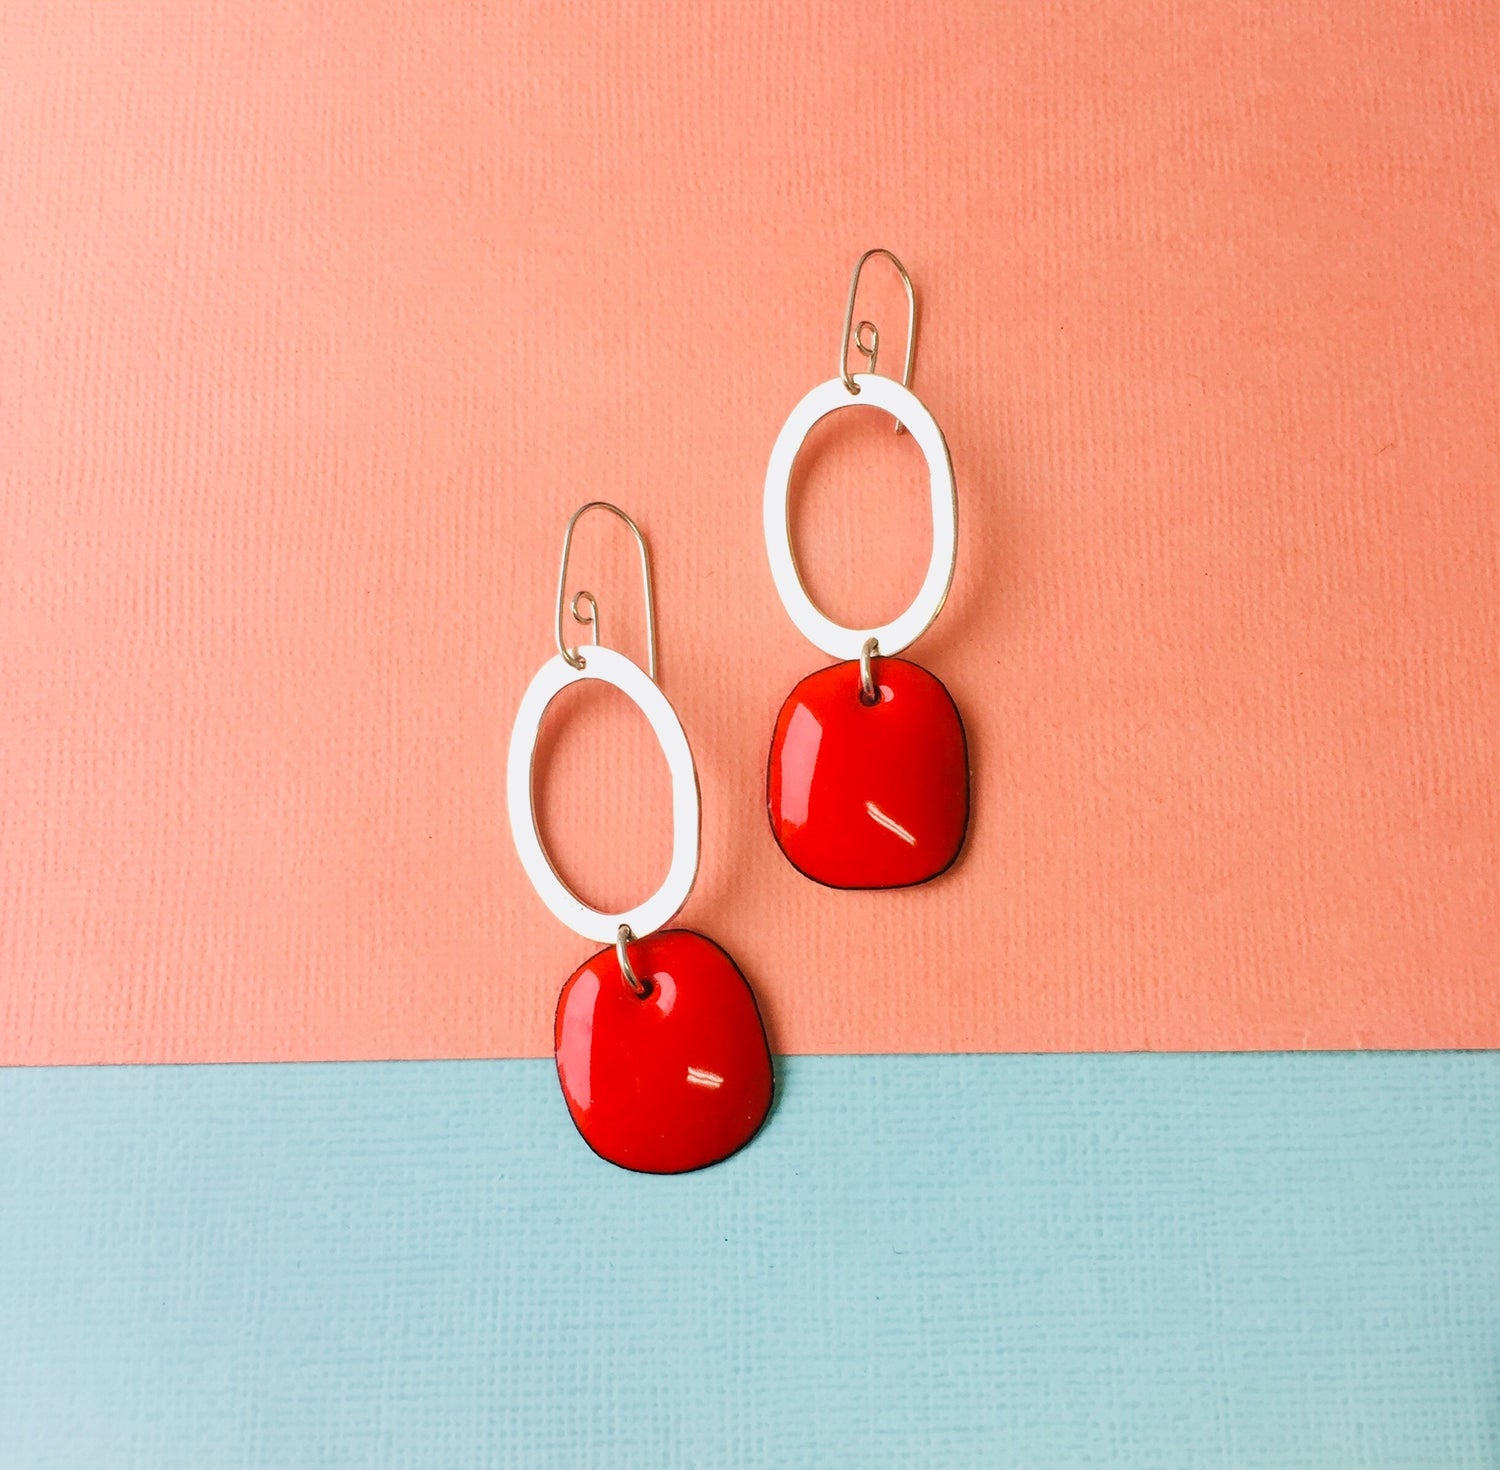 Image of Handmade Sterling silver hoop earring with tangerine red enamel drop